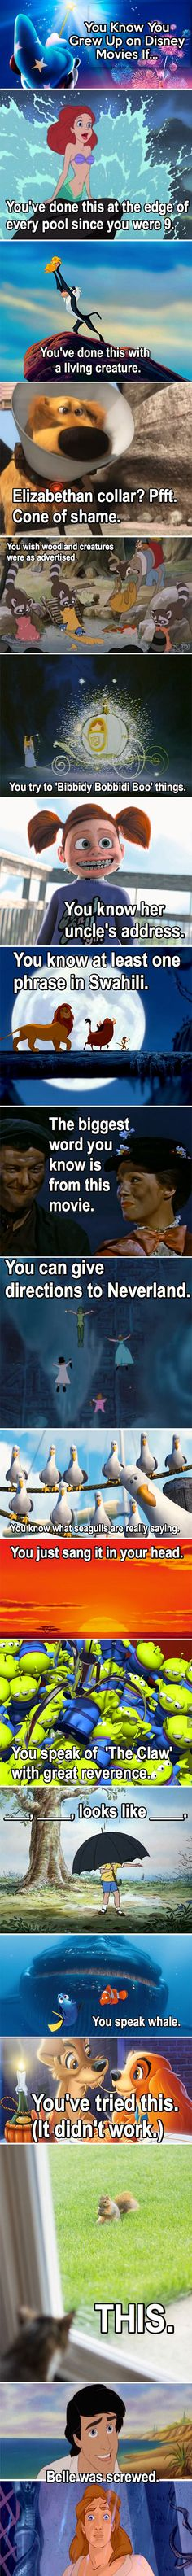 You know you grew up on Disney movies if…